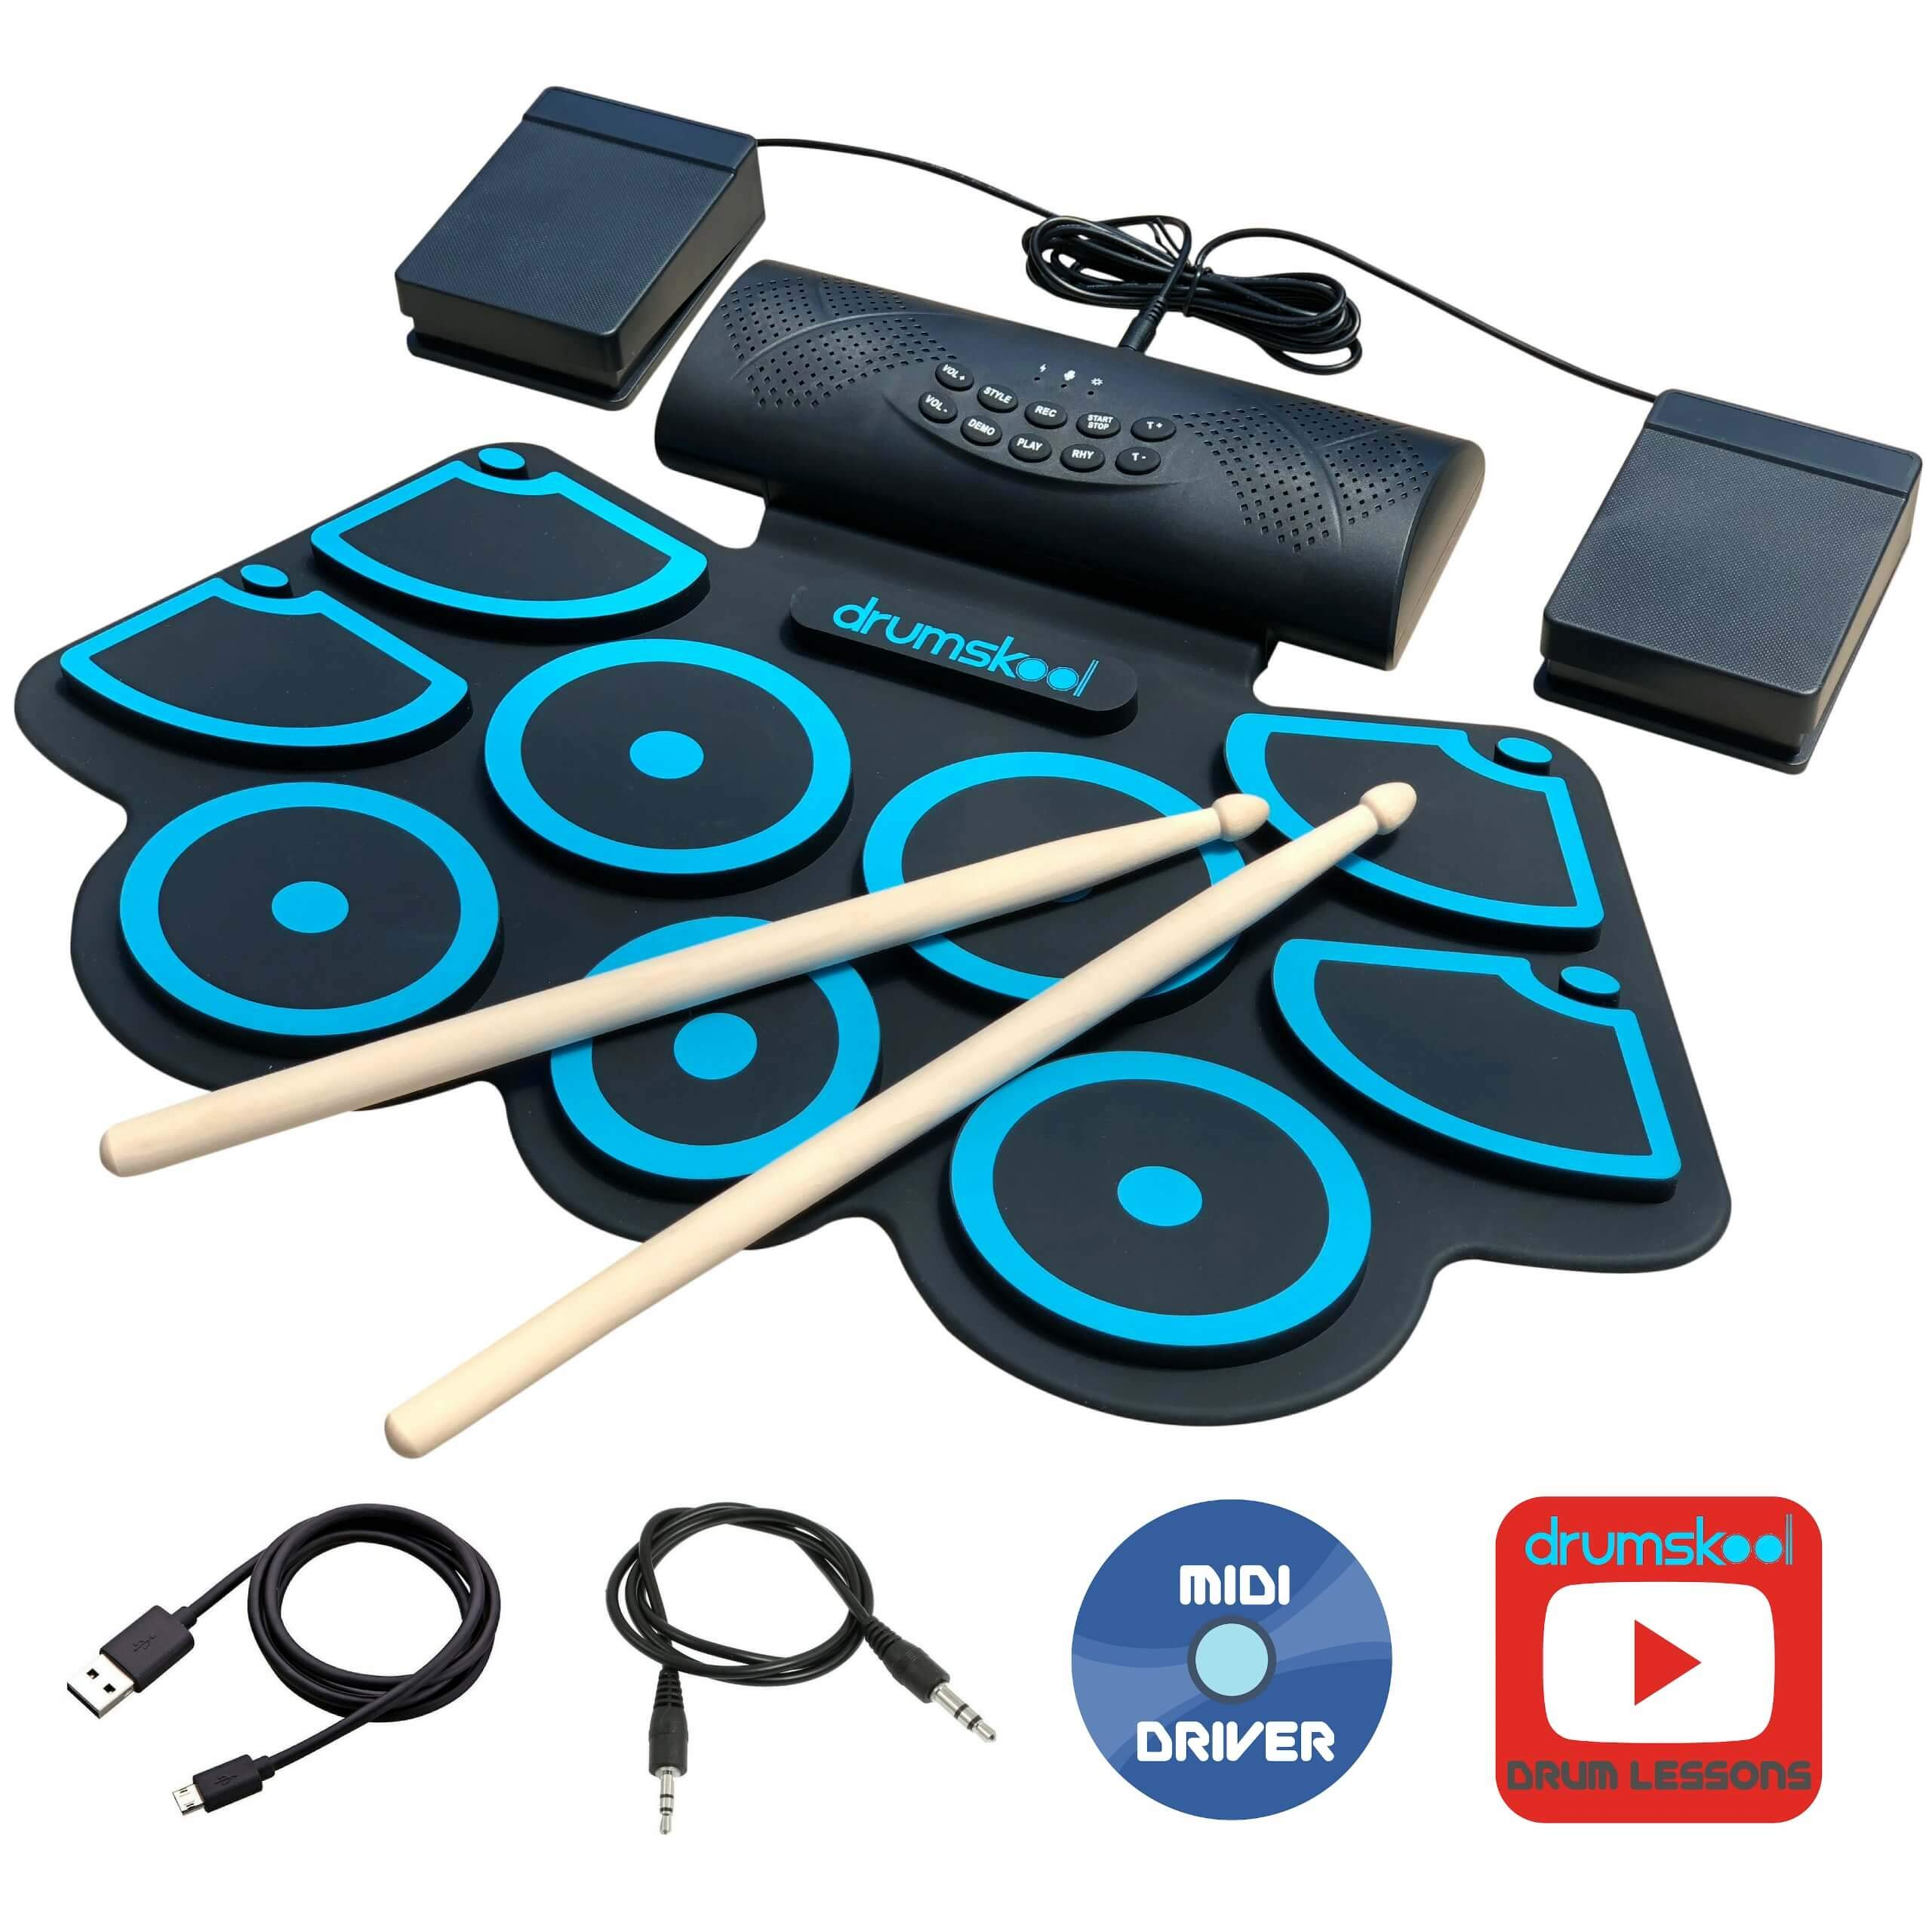 Drumskool Electric Drum Set, MIDI Electronic Drum Pad Set, Connect your phone to play along with included Drum Lessons, Speakers, Drum Pedals, Drum Sticks, 10 hours play time, Quickstart Guide by Drumskool